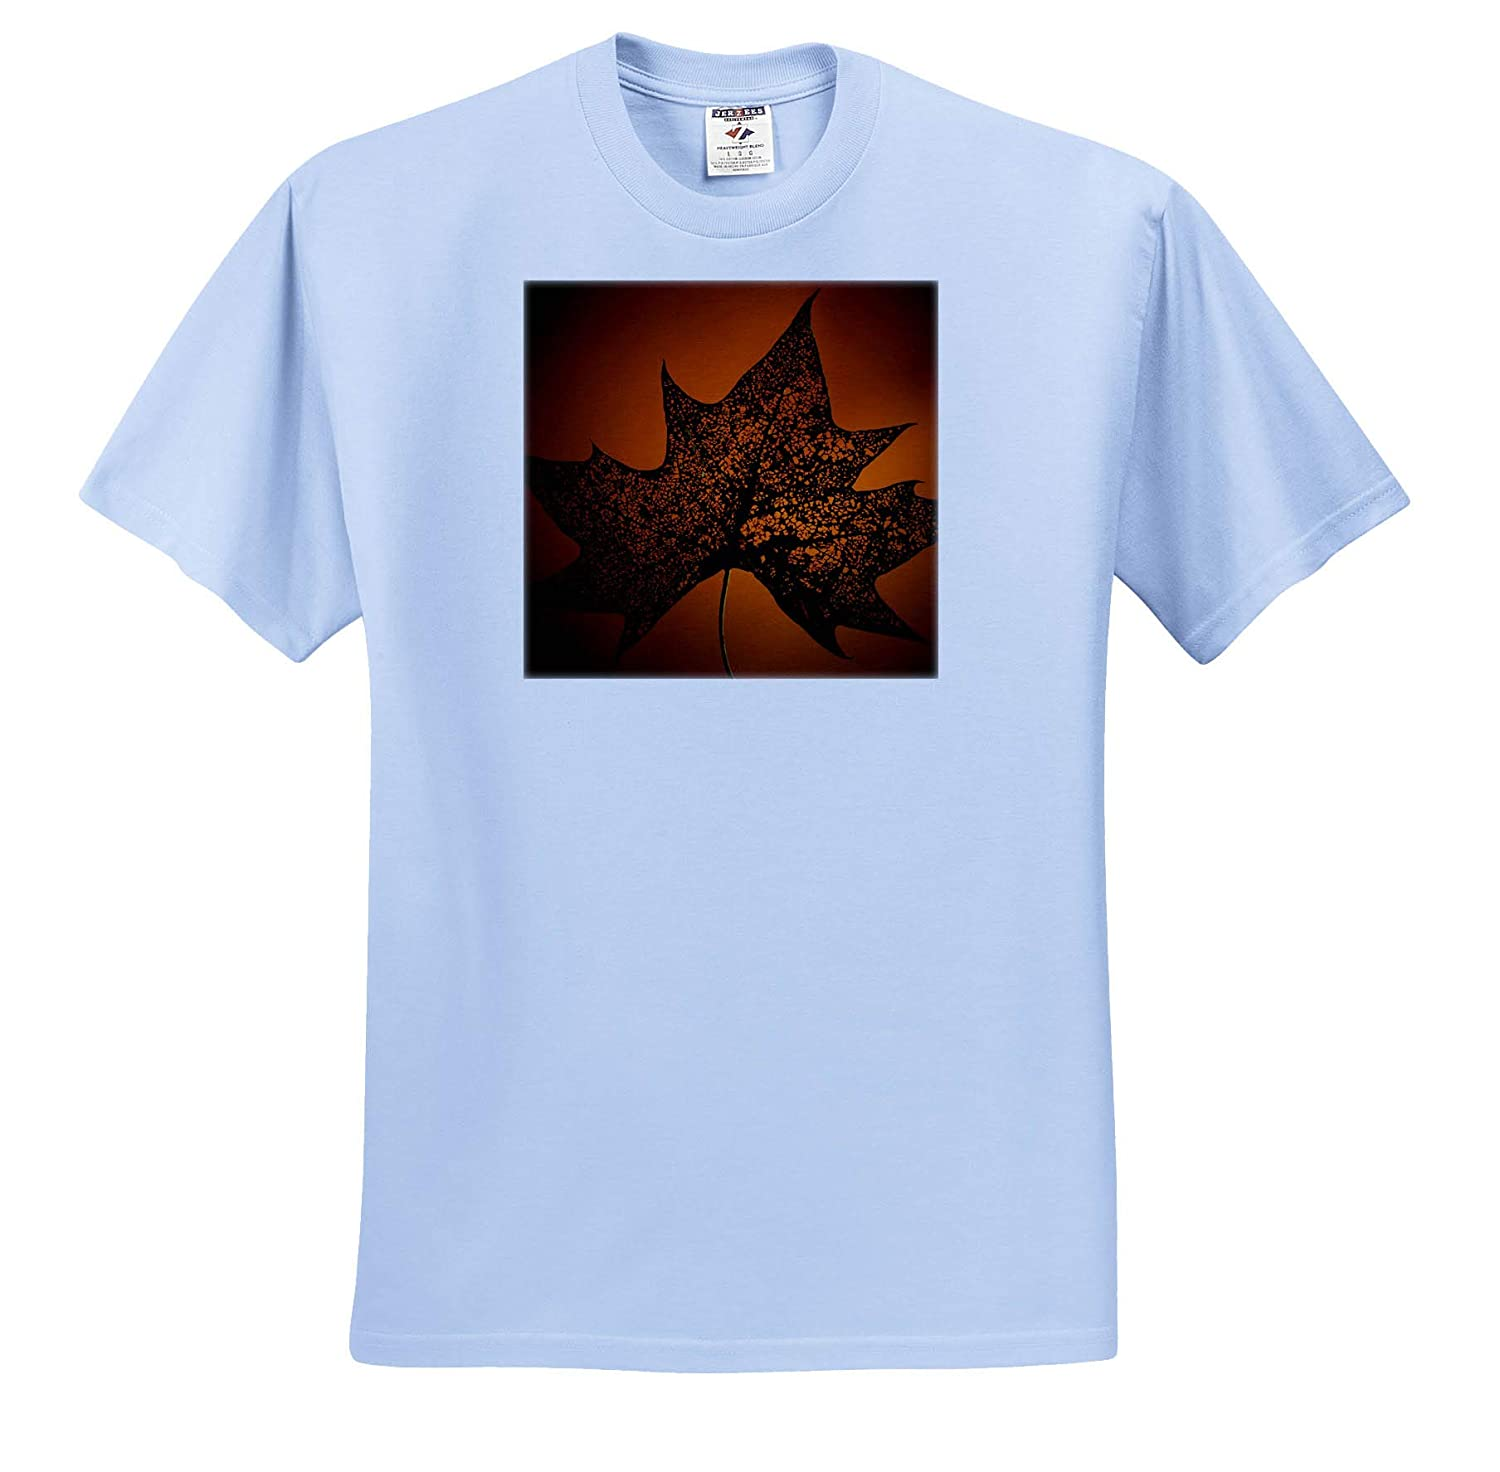 3dRose Stamp City Nature - T-Shirts Photograph of a Bug Eaten Maple Leaf on an Orange Background